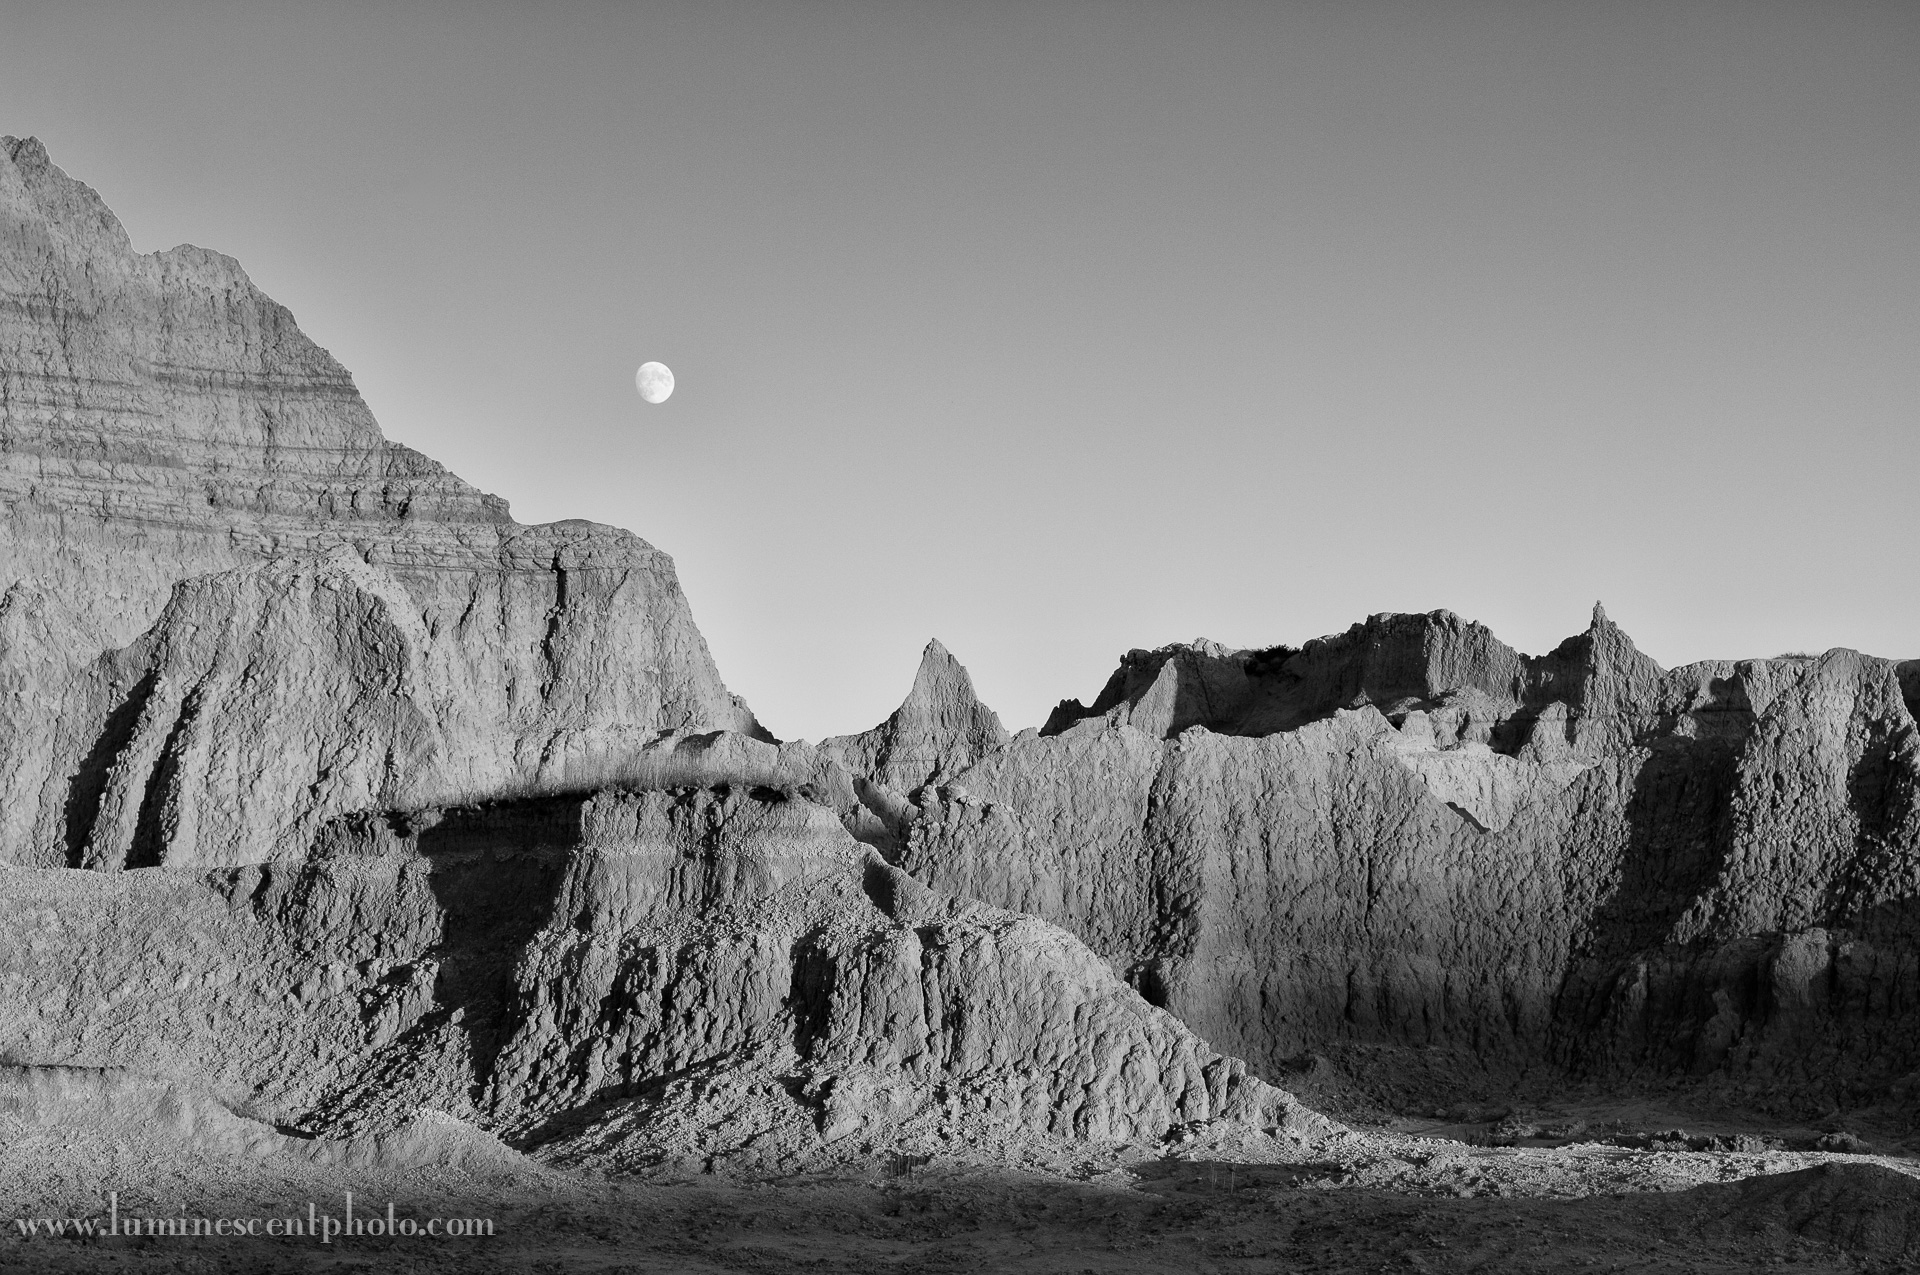 """Moonscape."" Nikon D2x with 17-55mm f/2.8 AFS DX lens, processed in Silver Efex Pro 2."